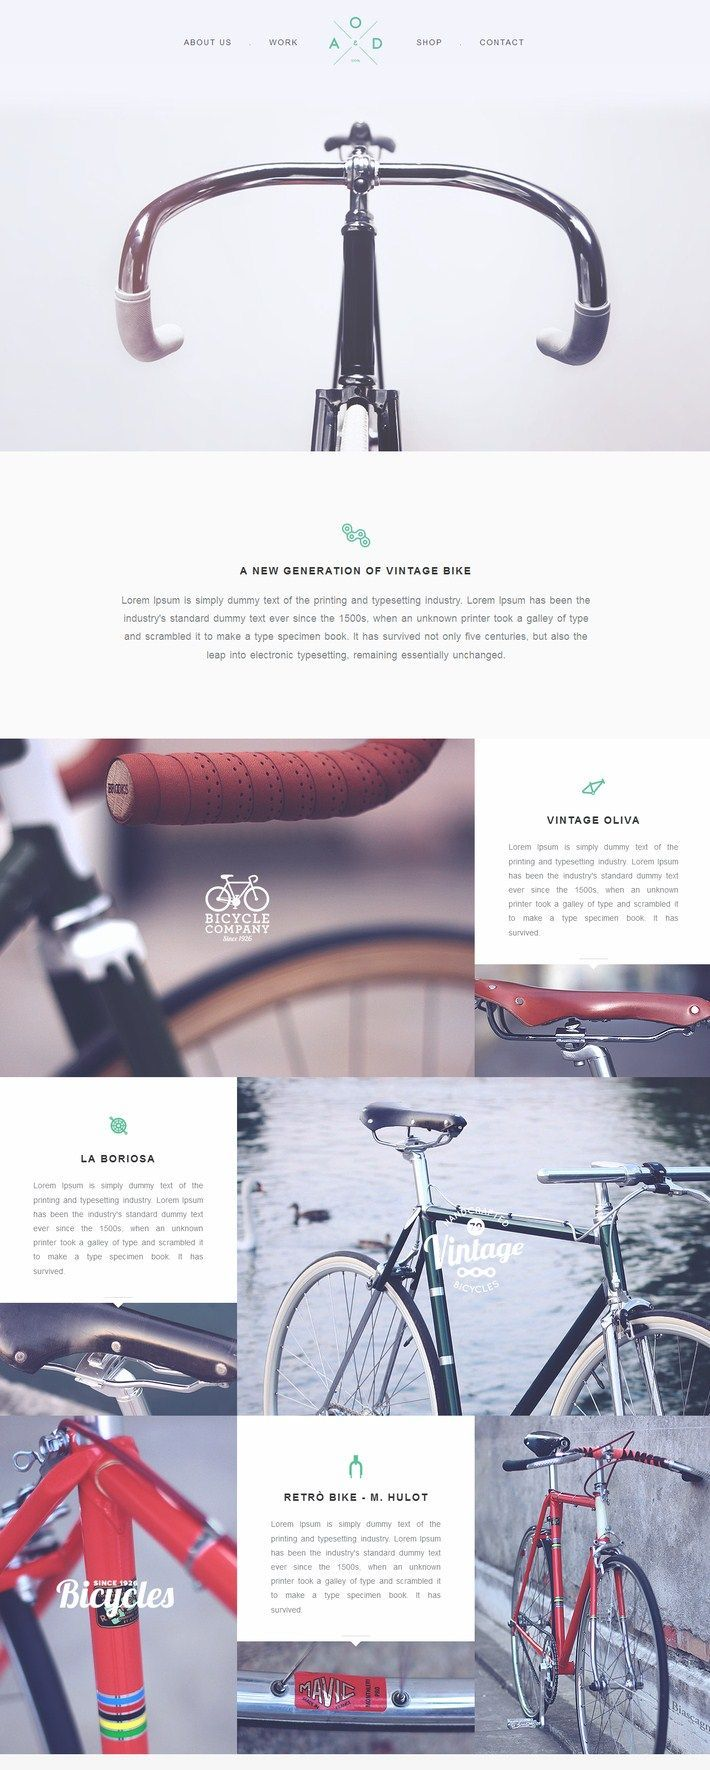 Yebo - Responsive HTML5 CSS3 Template http://peterfinlan.com/yebo-flat-layout/ http://www.peterfinlan.com/freebies/yebo-flat-layout.zip